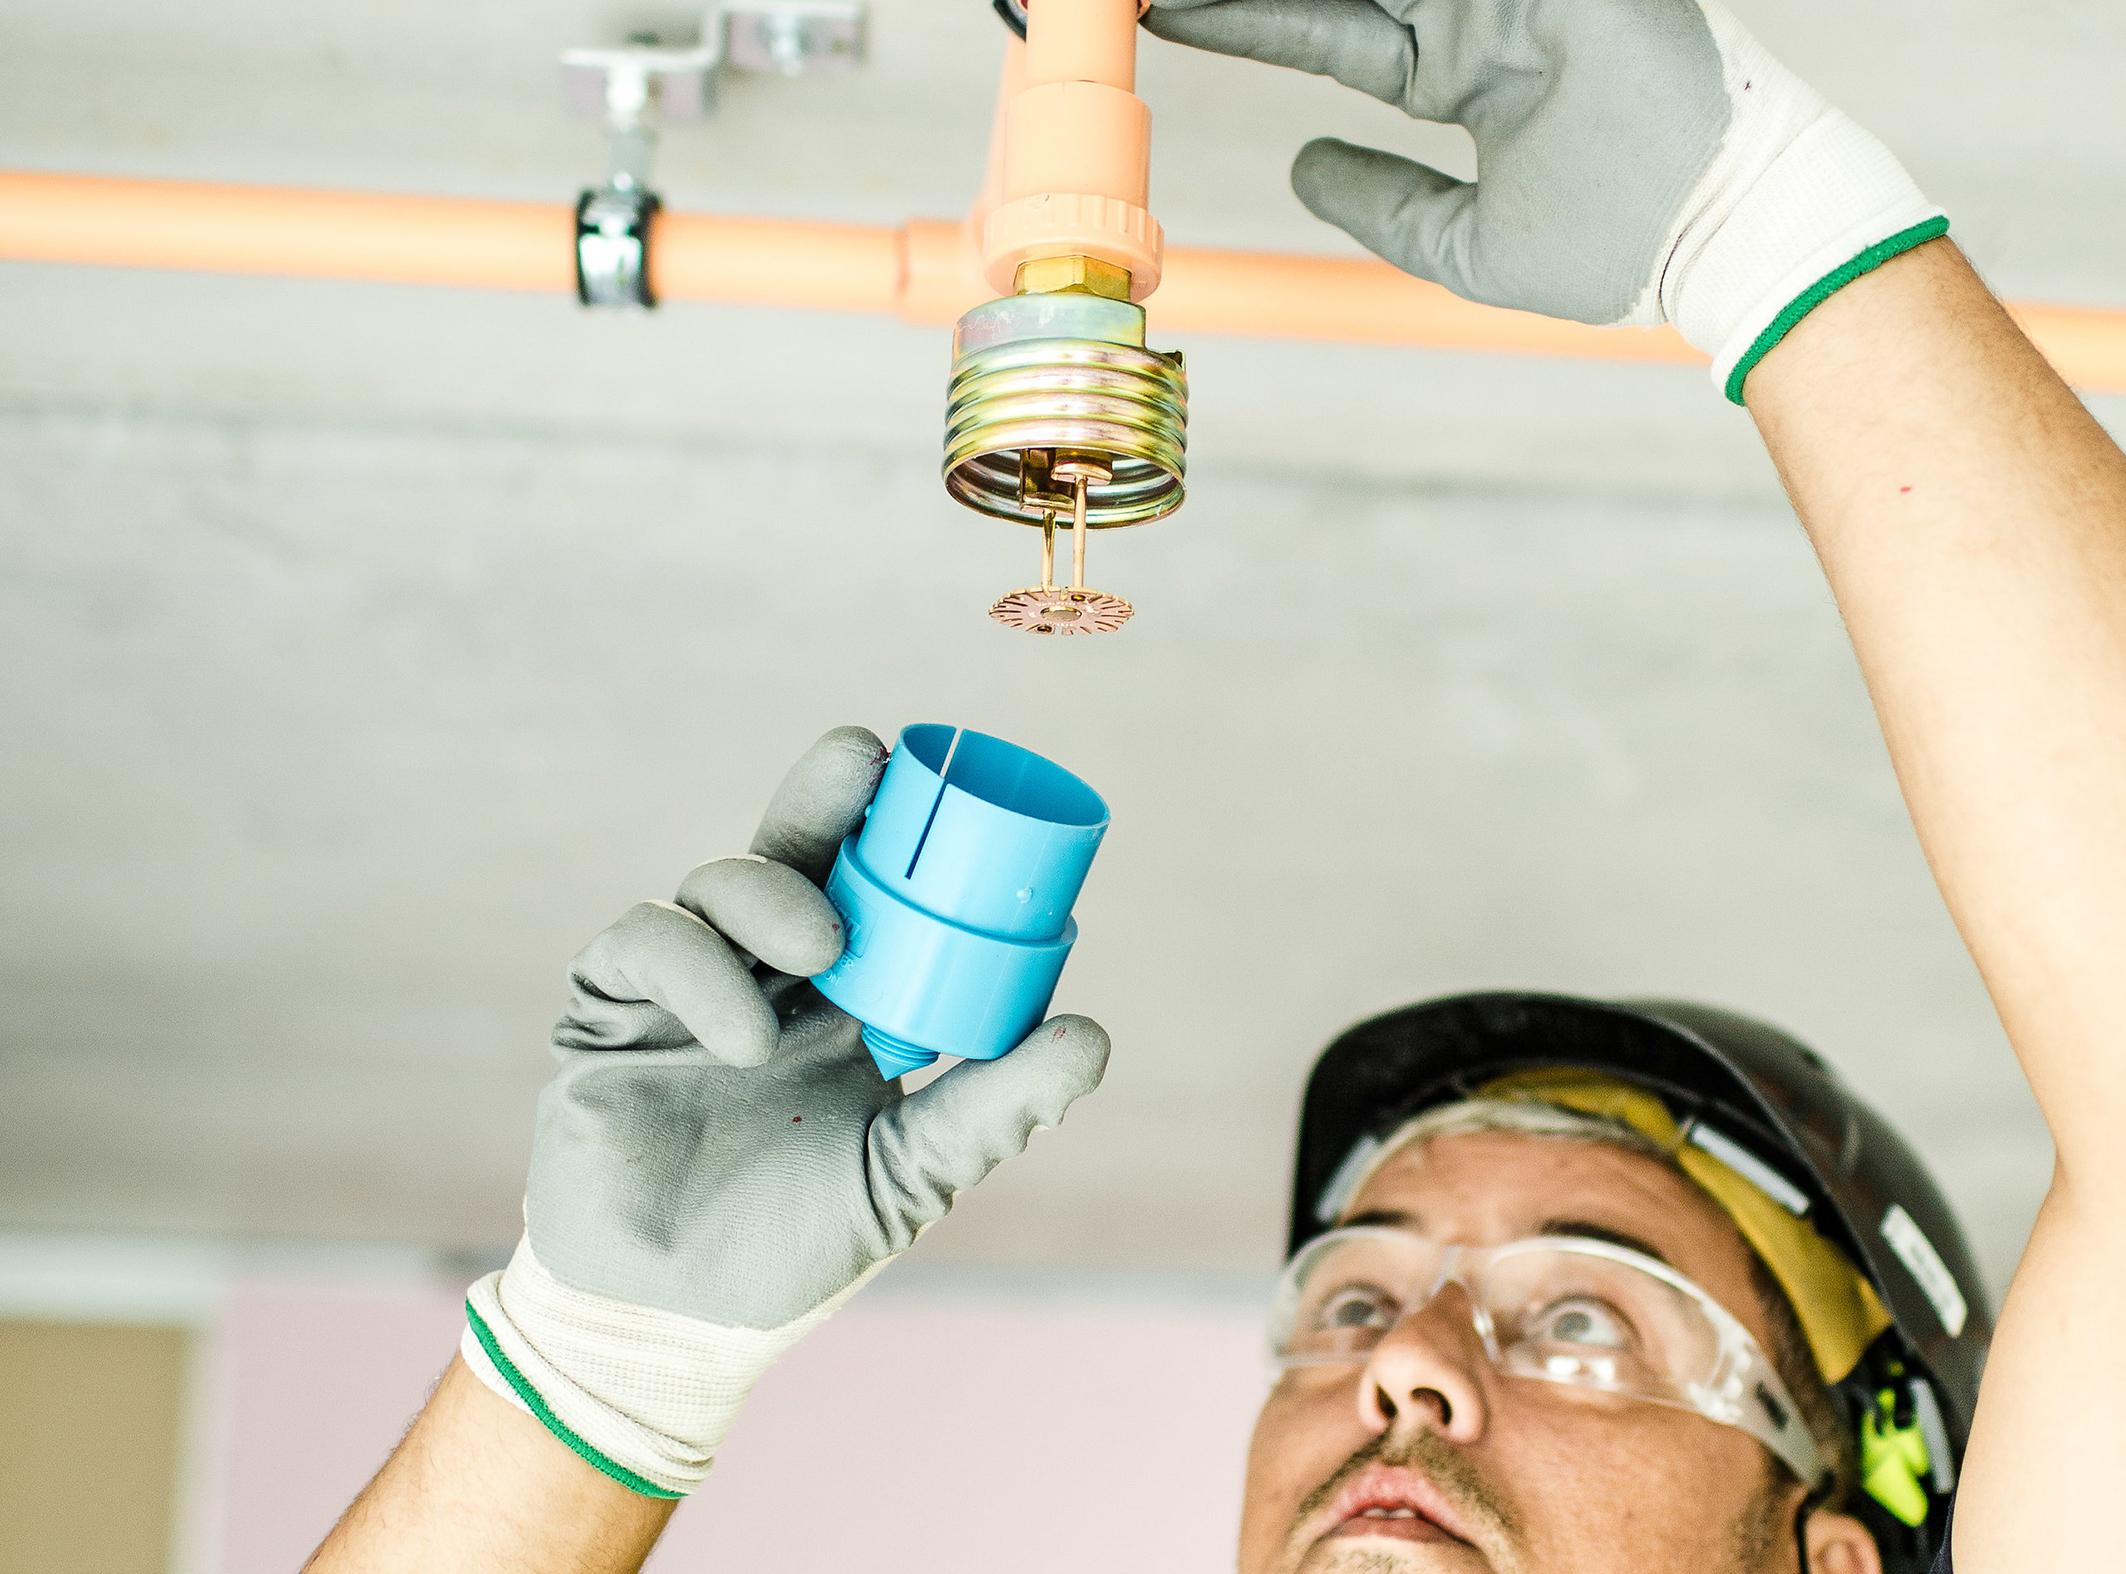 PTSG's new sprinkler contracts in the UK and Ireland